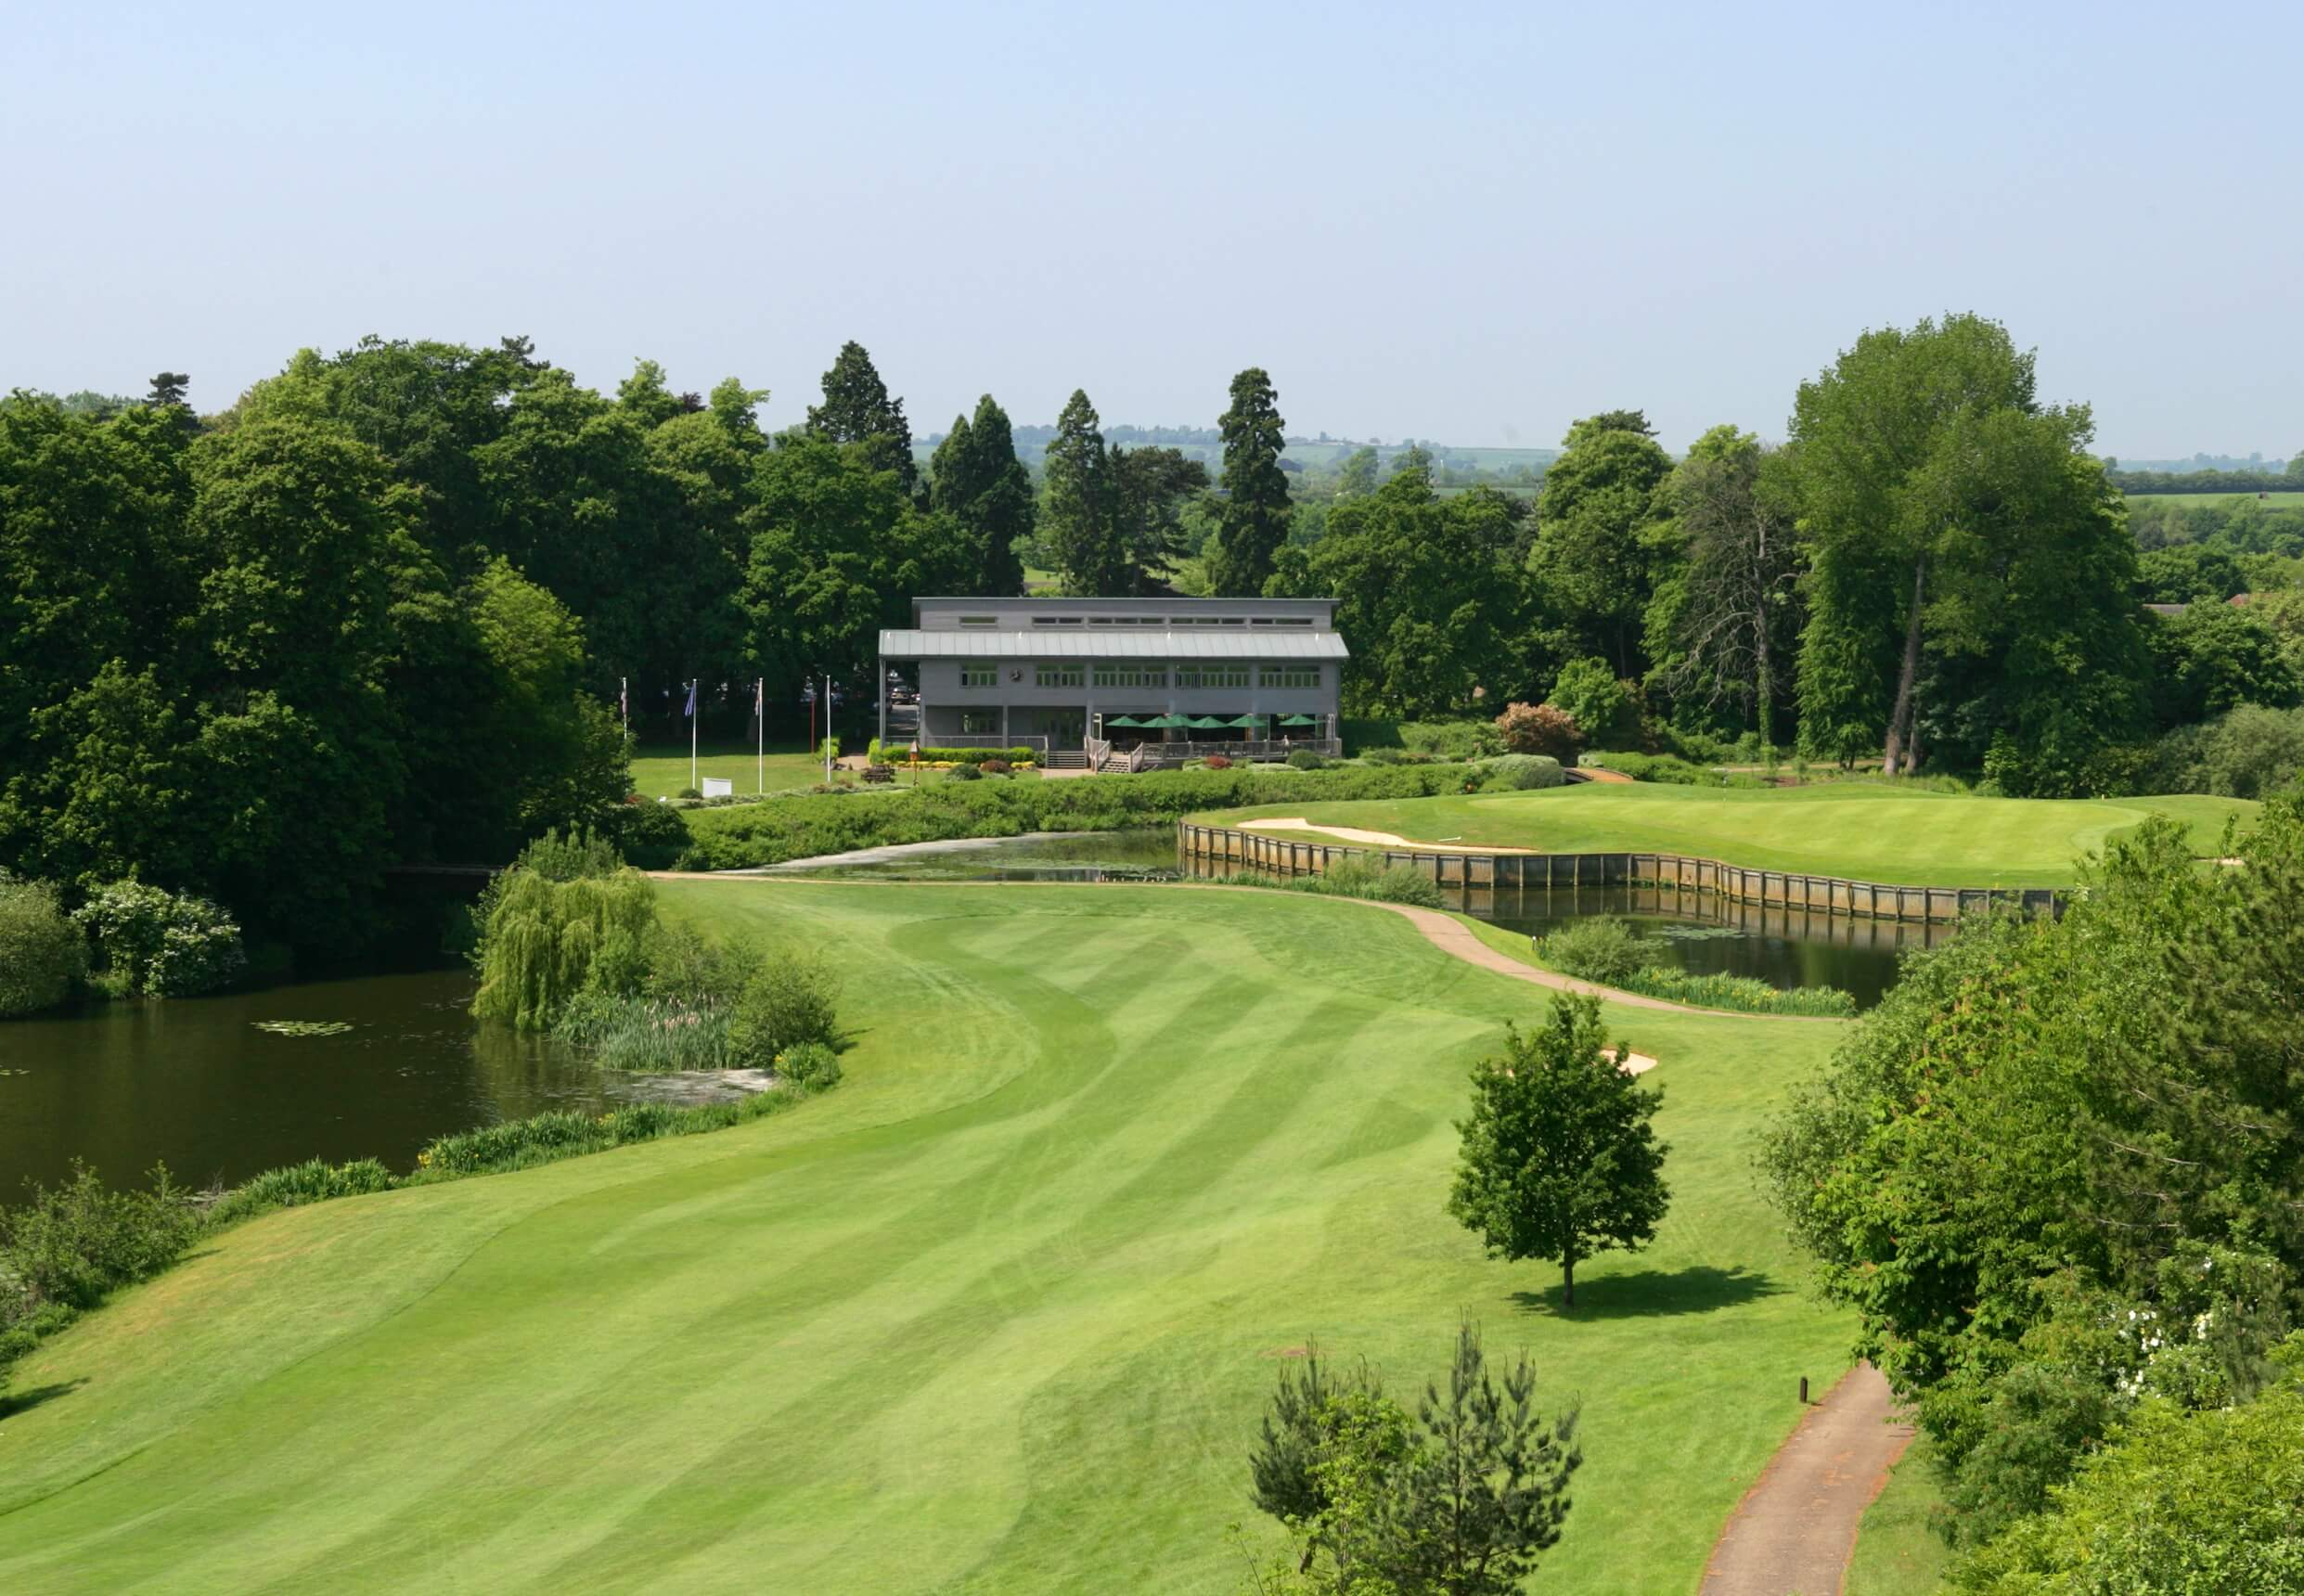 Collingtree Park Golf Club Course Review - Golf Monthly